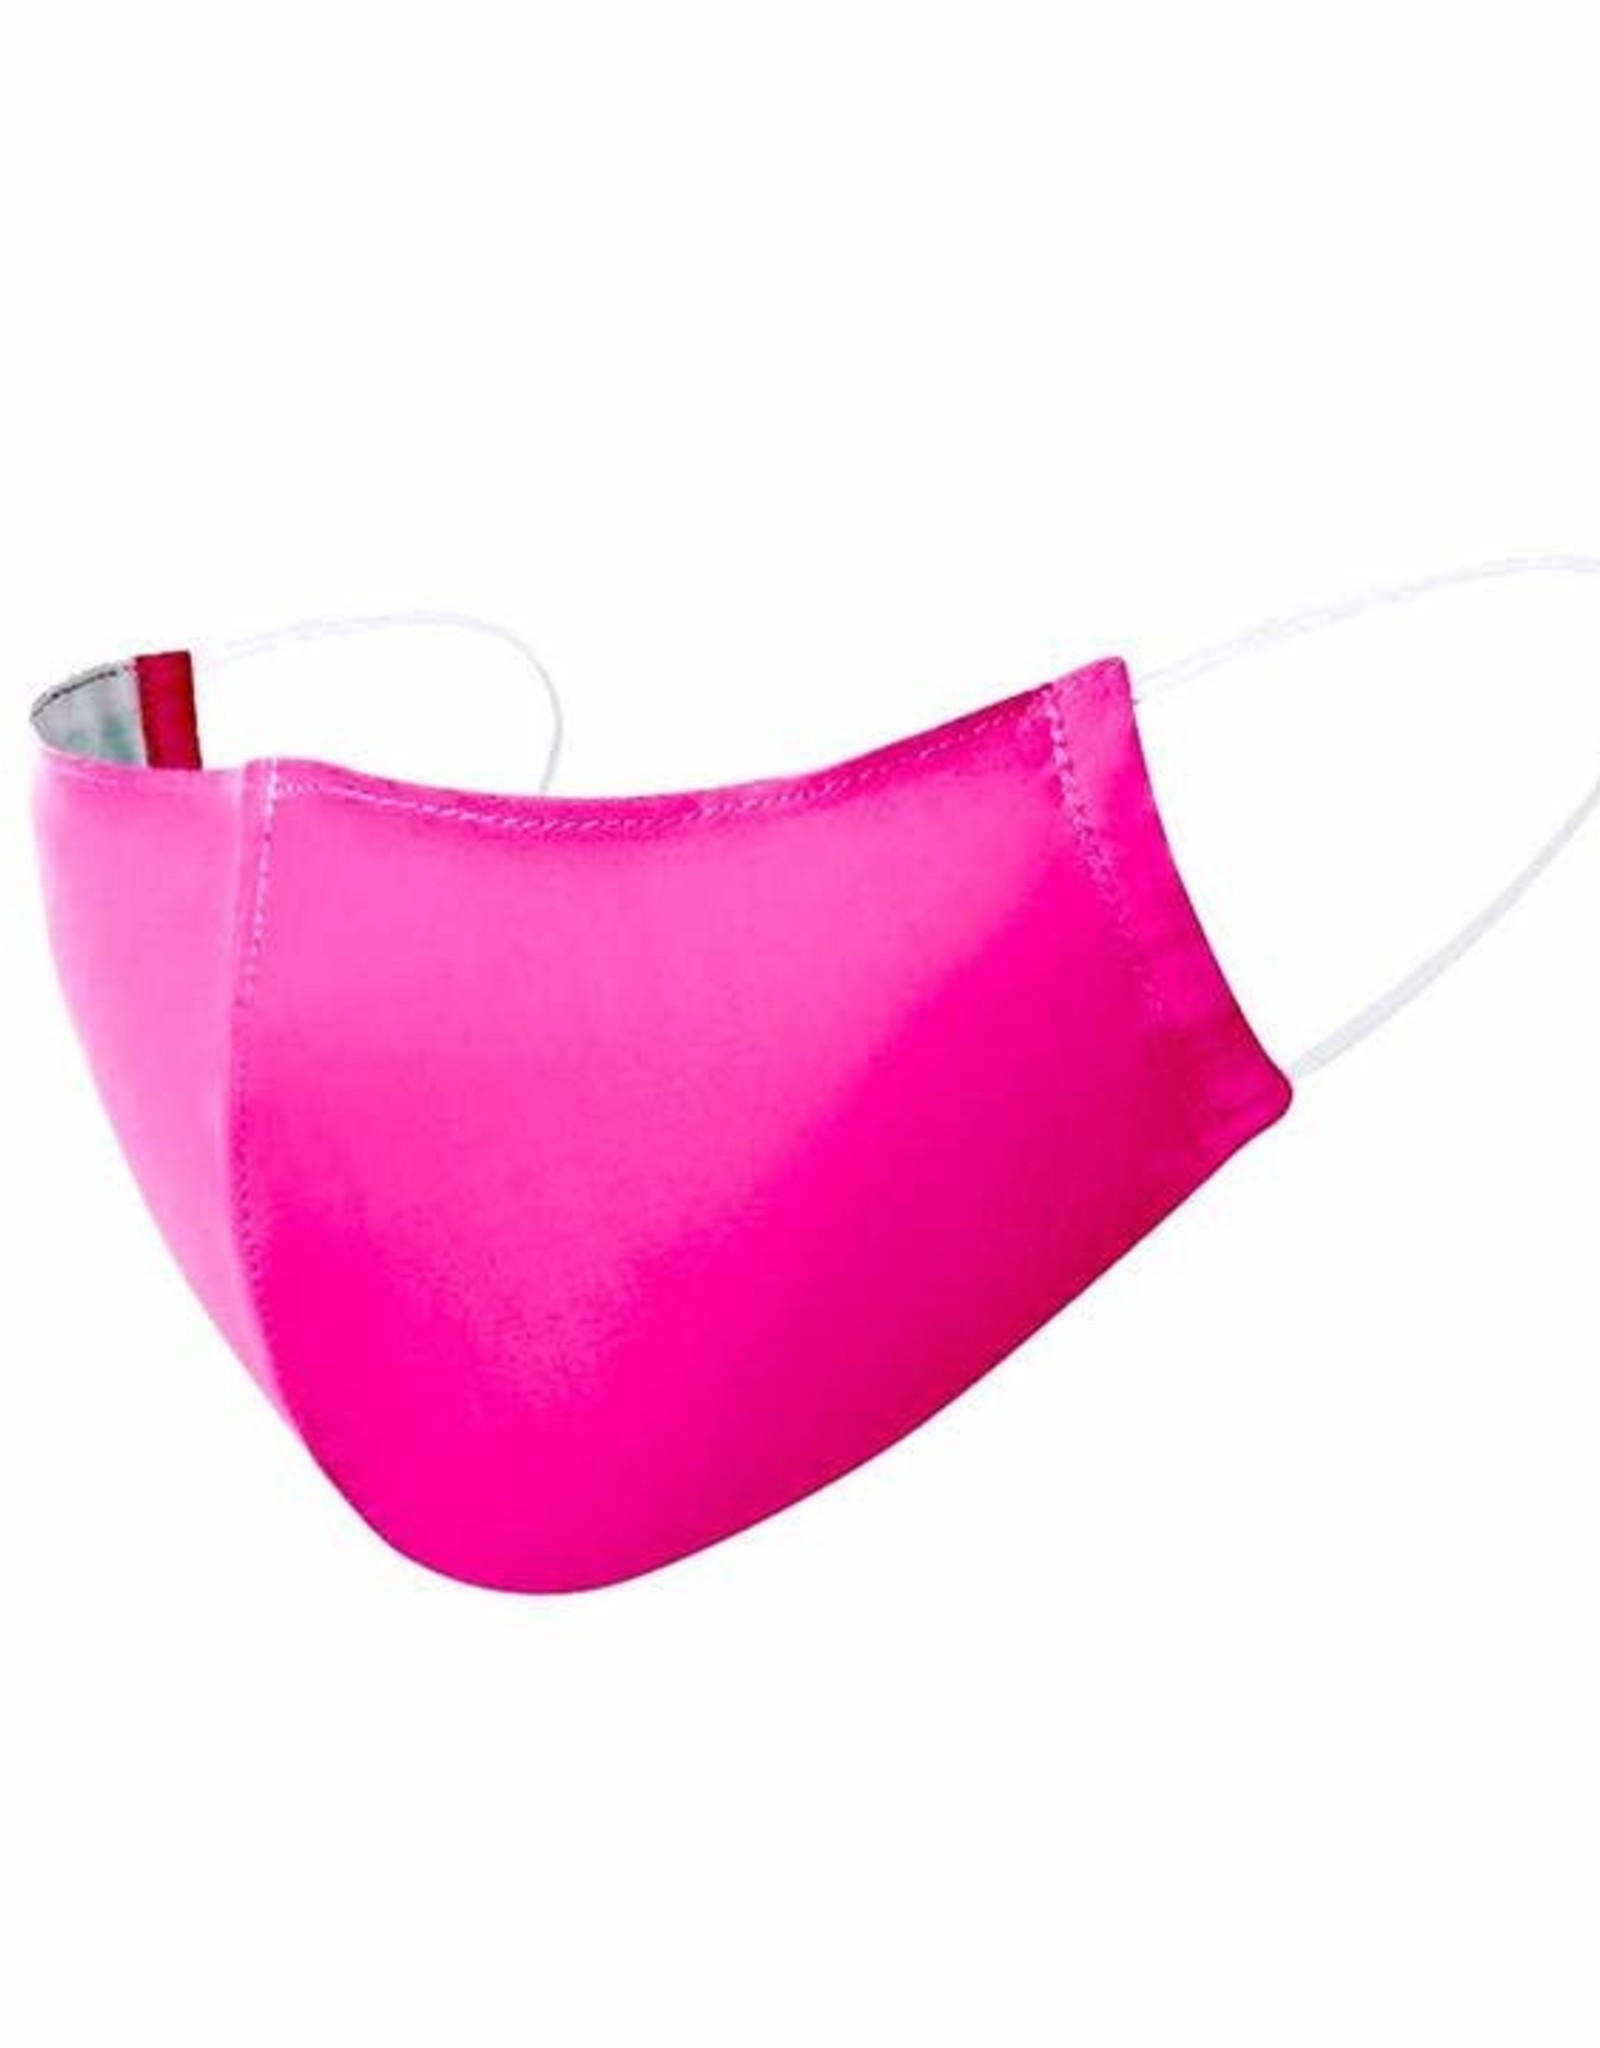 Cotton Mask, Pink w/ Filter Pocket, 5-8 years old